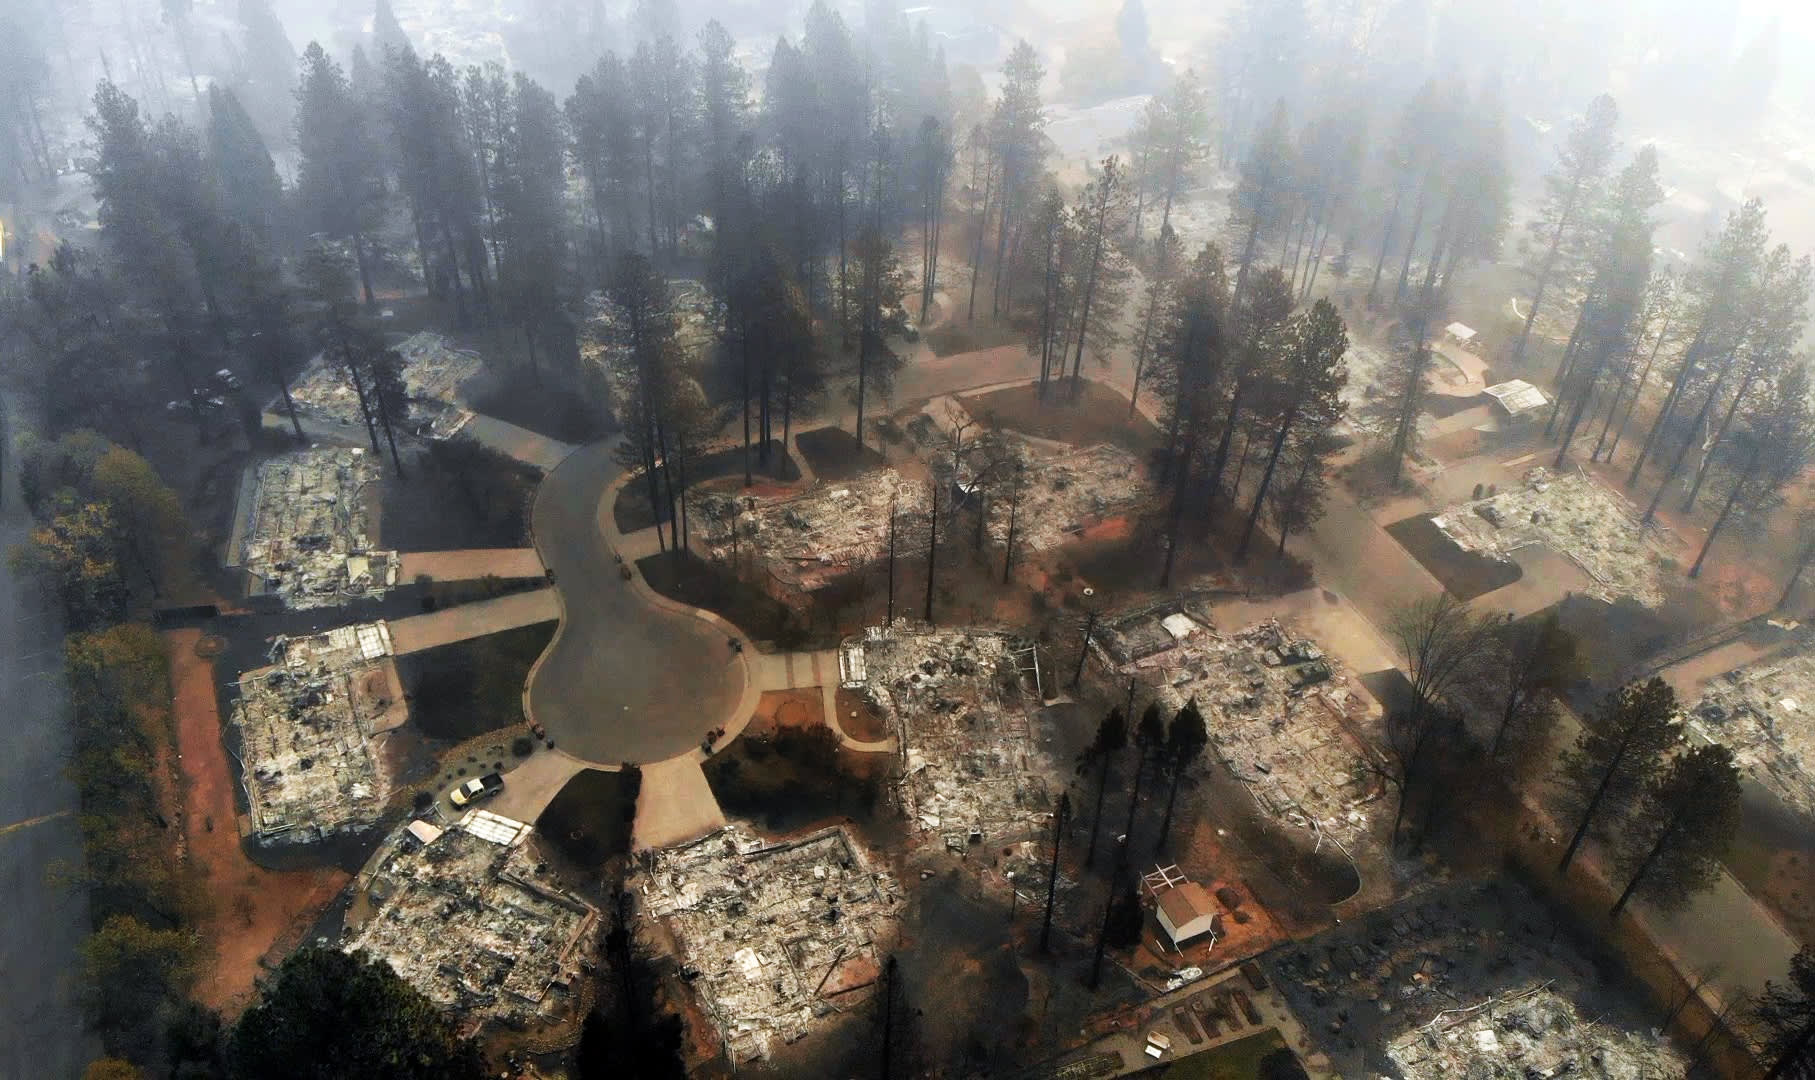 An aerial view of Paradise, California off of Clark Road on Nov. 15, 2018. The Camp Fire has burned more than 7,000 structures in Paradise.